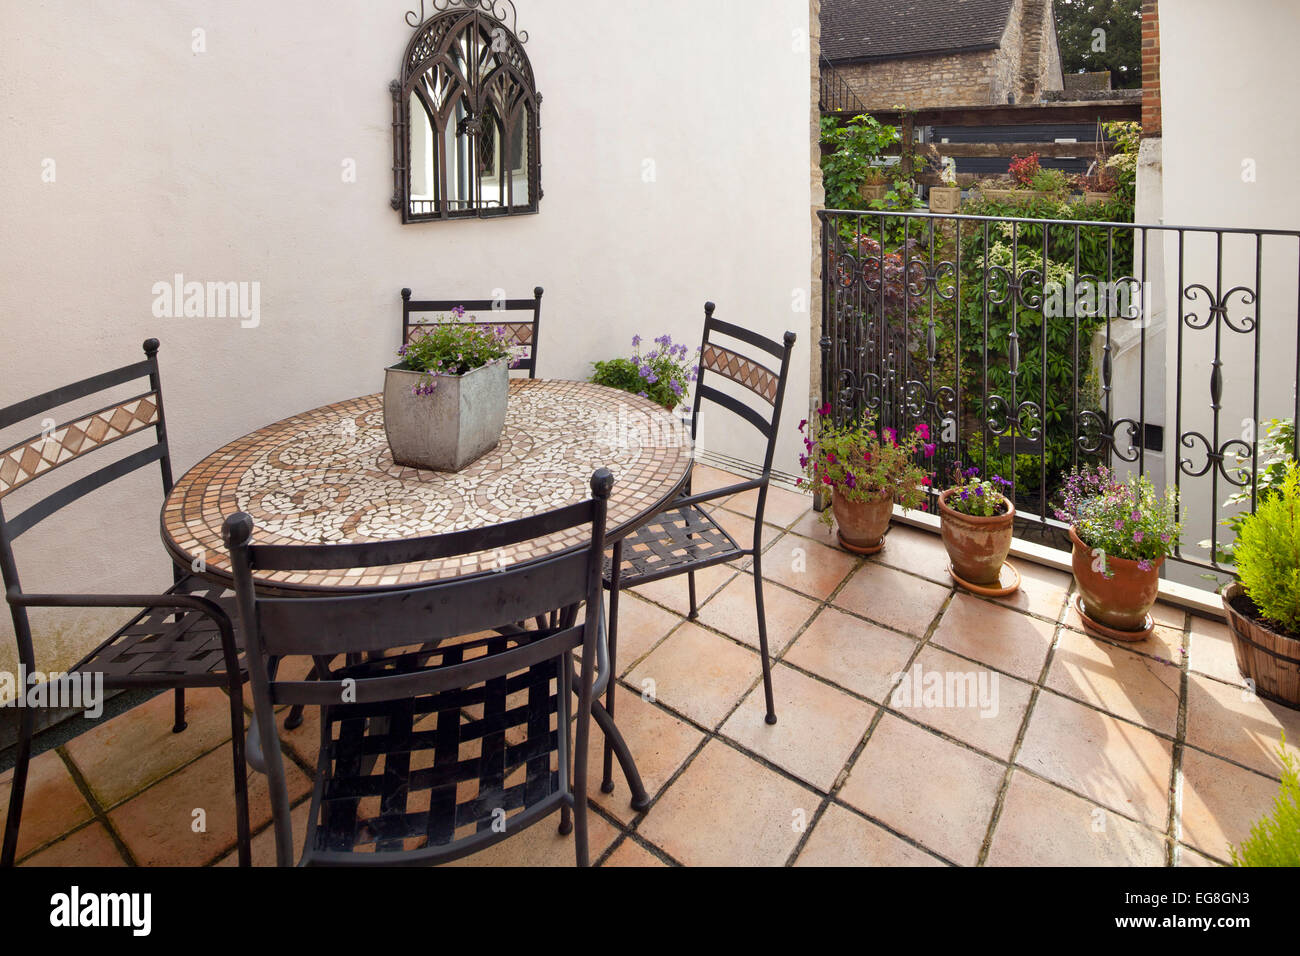 Small balcony with terracotta tiled floor,pots and outdoor metal seating, Garden,Oxfordshire,England - Stock Image